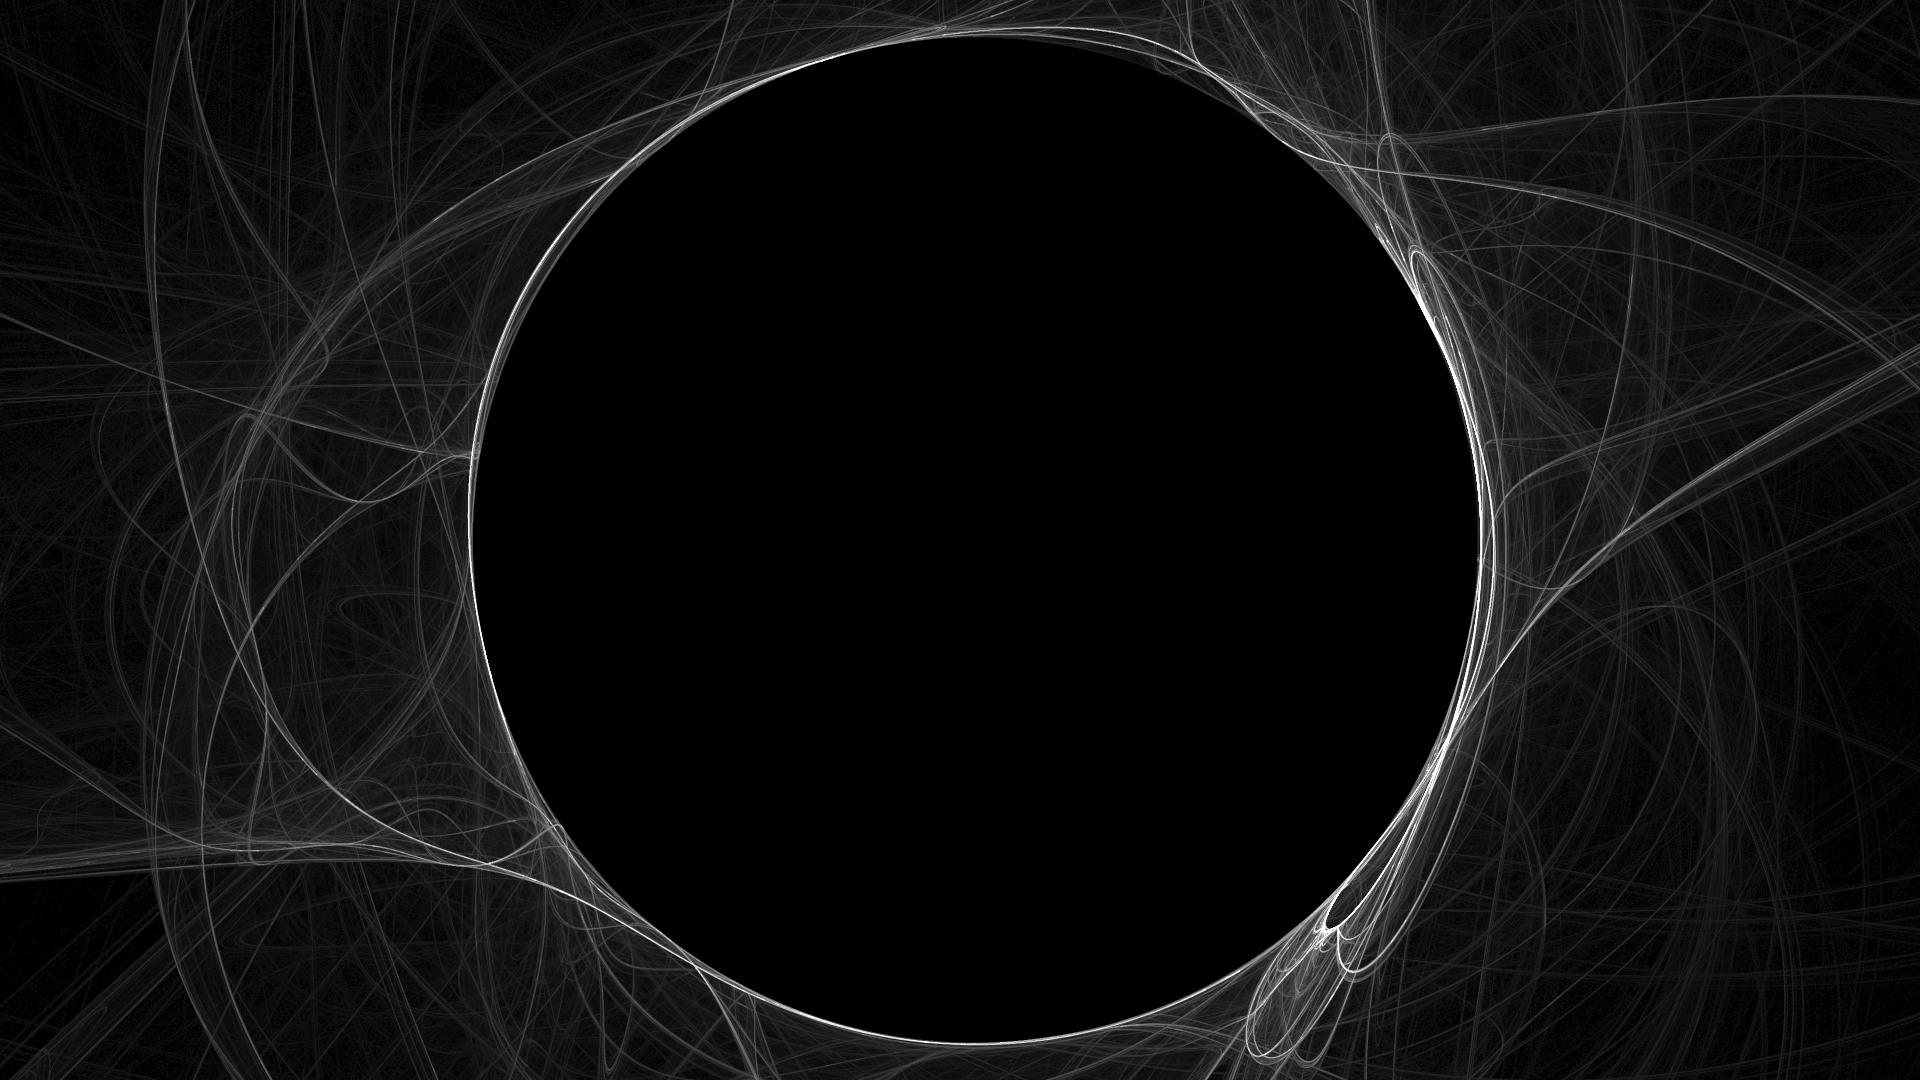 black hole - DriverLayer Search Engine